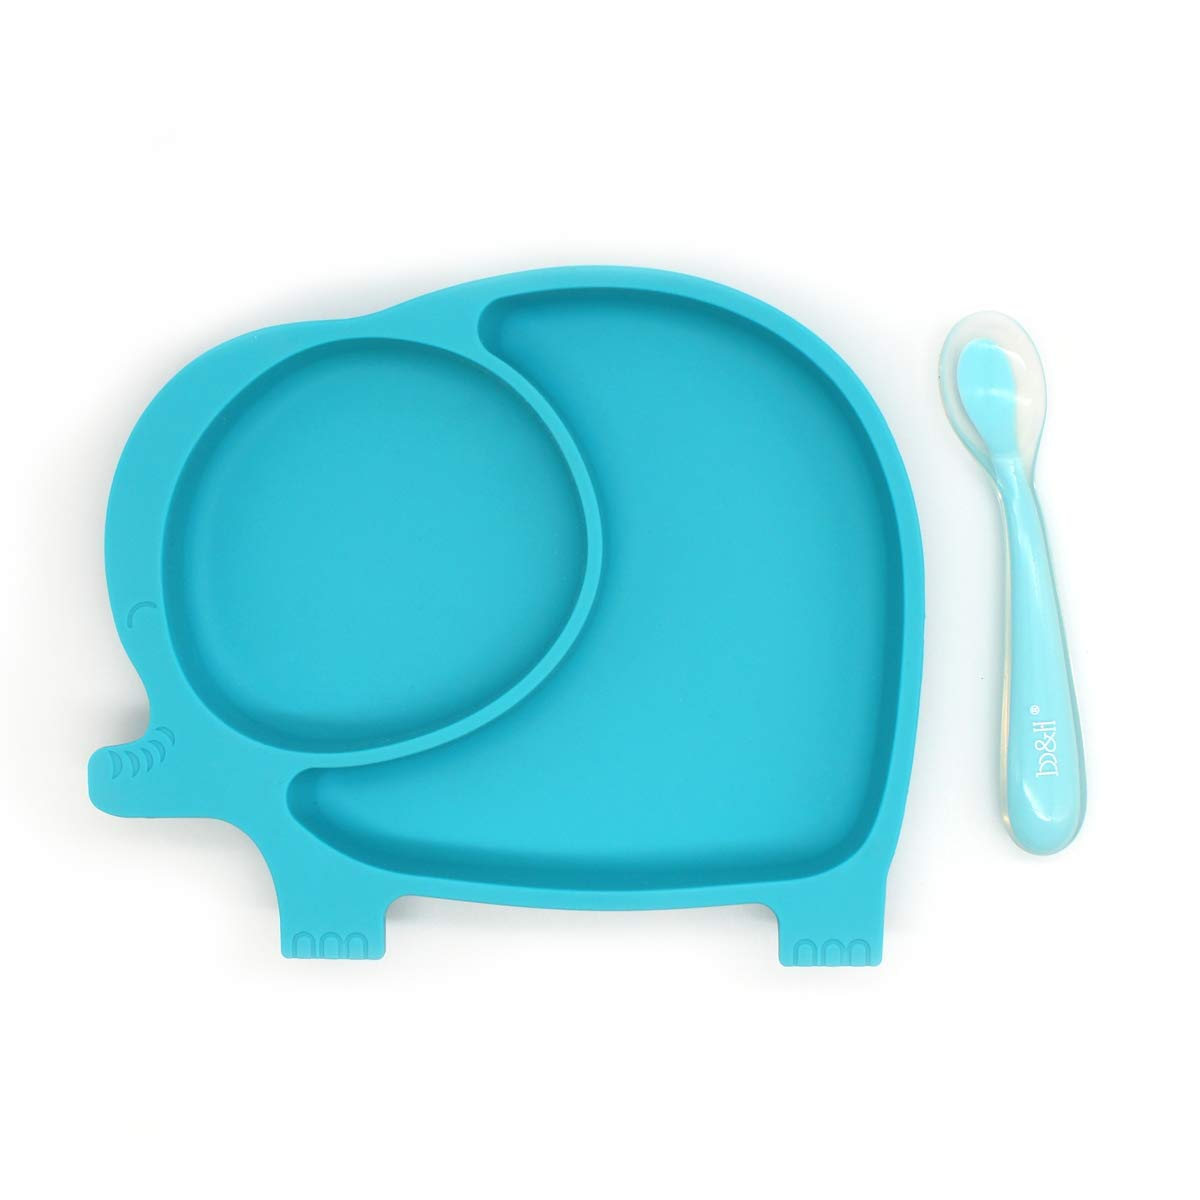 Silicone Suction Plate for Toddlers,Anti-Slip Baby Silicone Placemat with a Baby Spoon, Kids Toddler Divided Plates,BPA Free,Fits Most Highchair Trays (Blue)